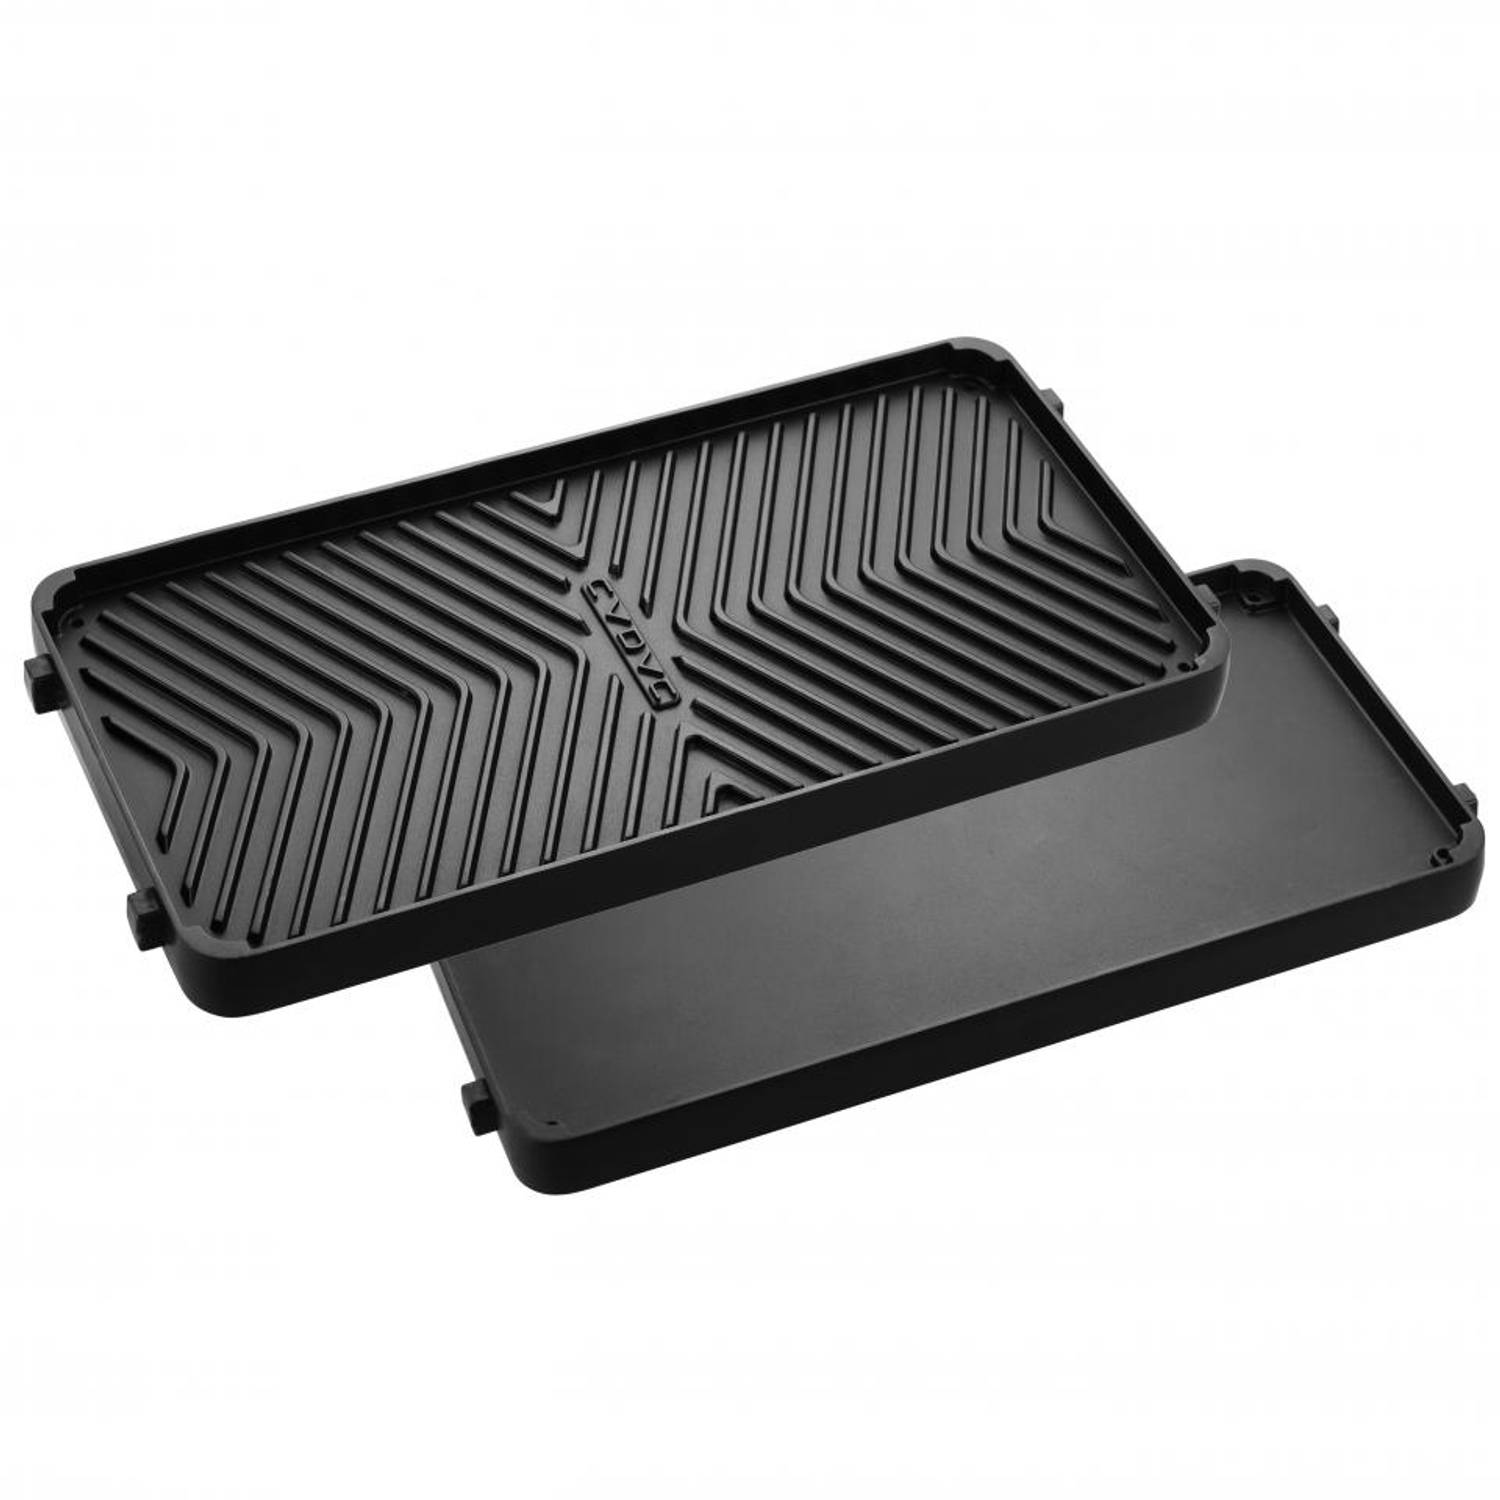 Cadac Stratos Reversible grill